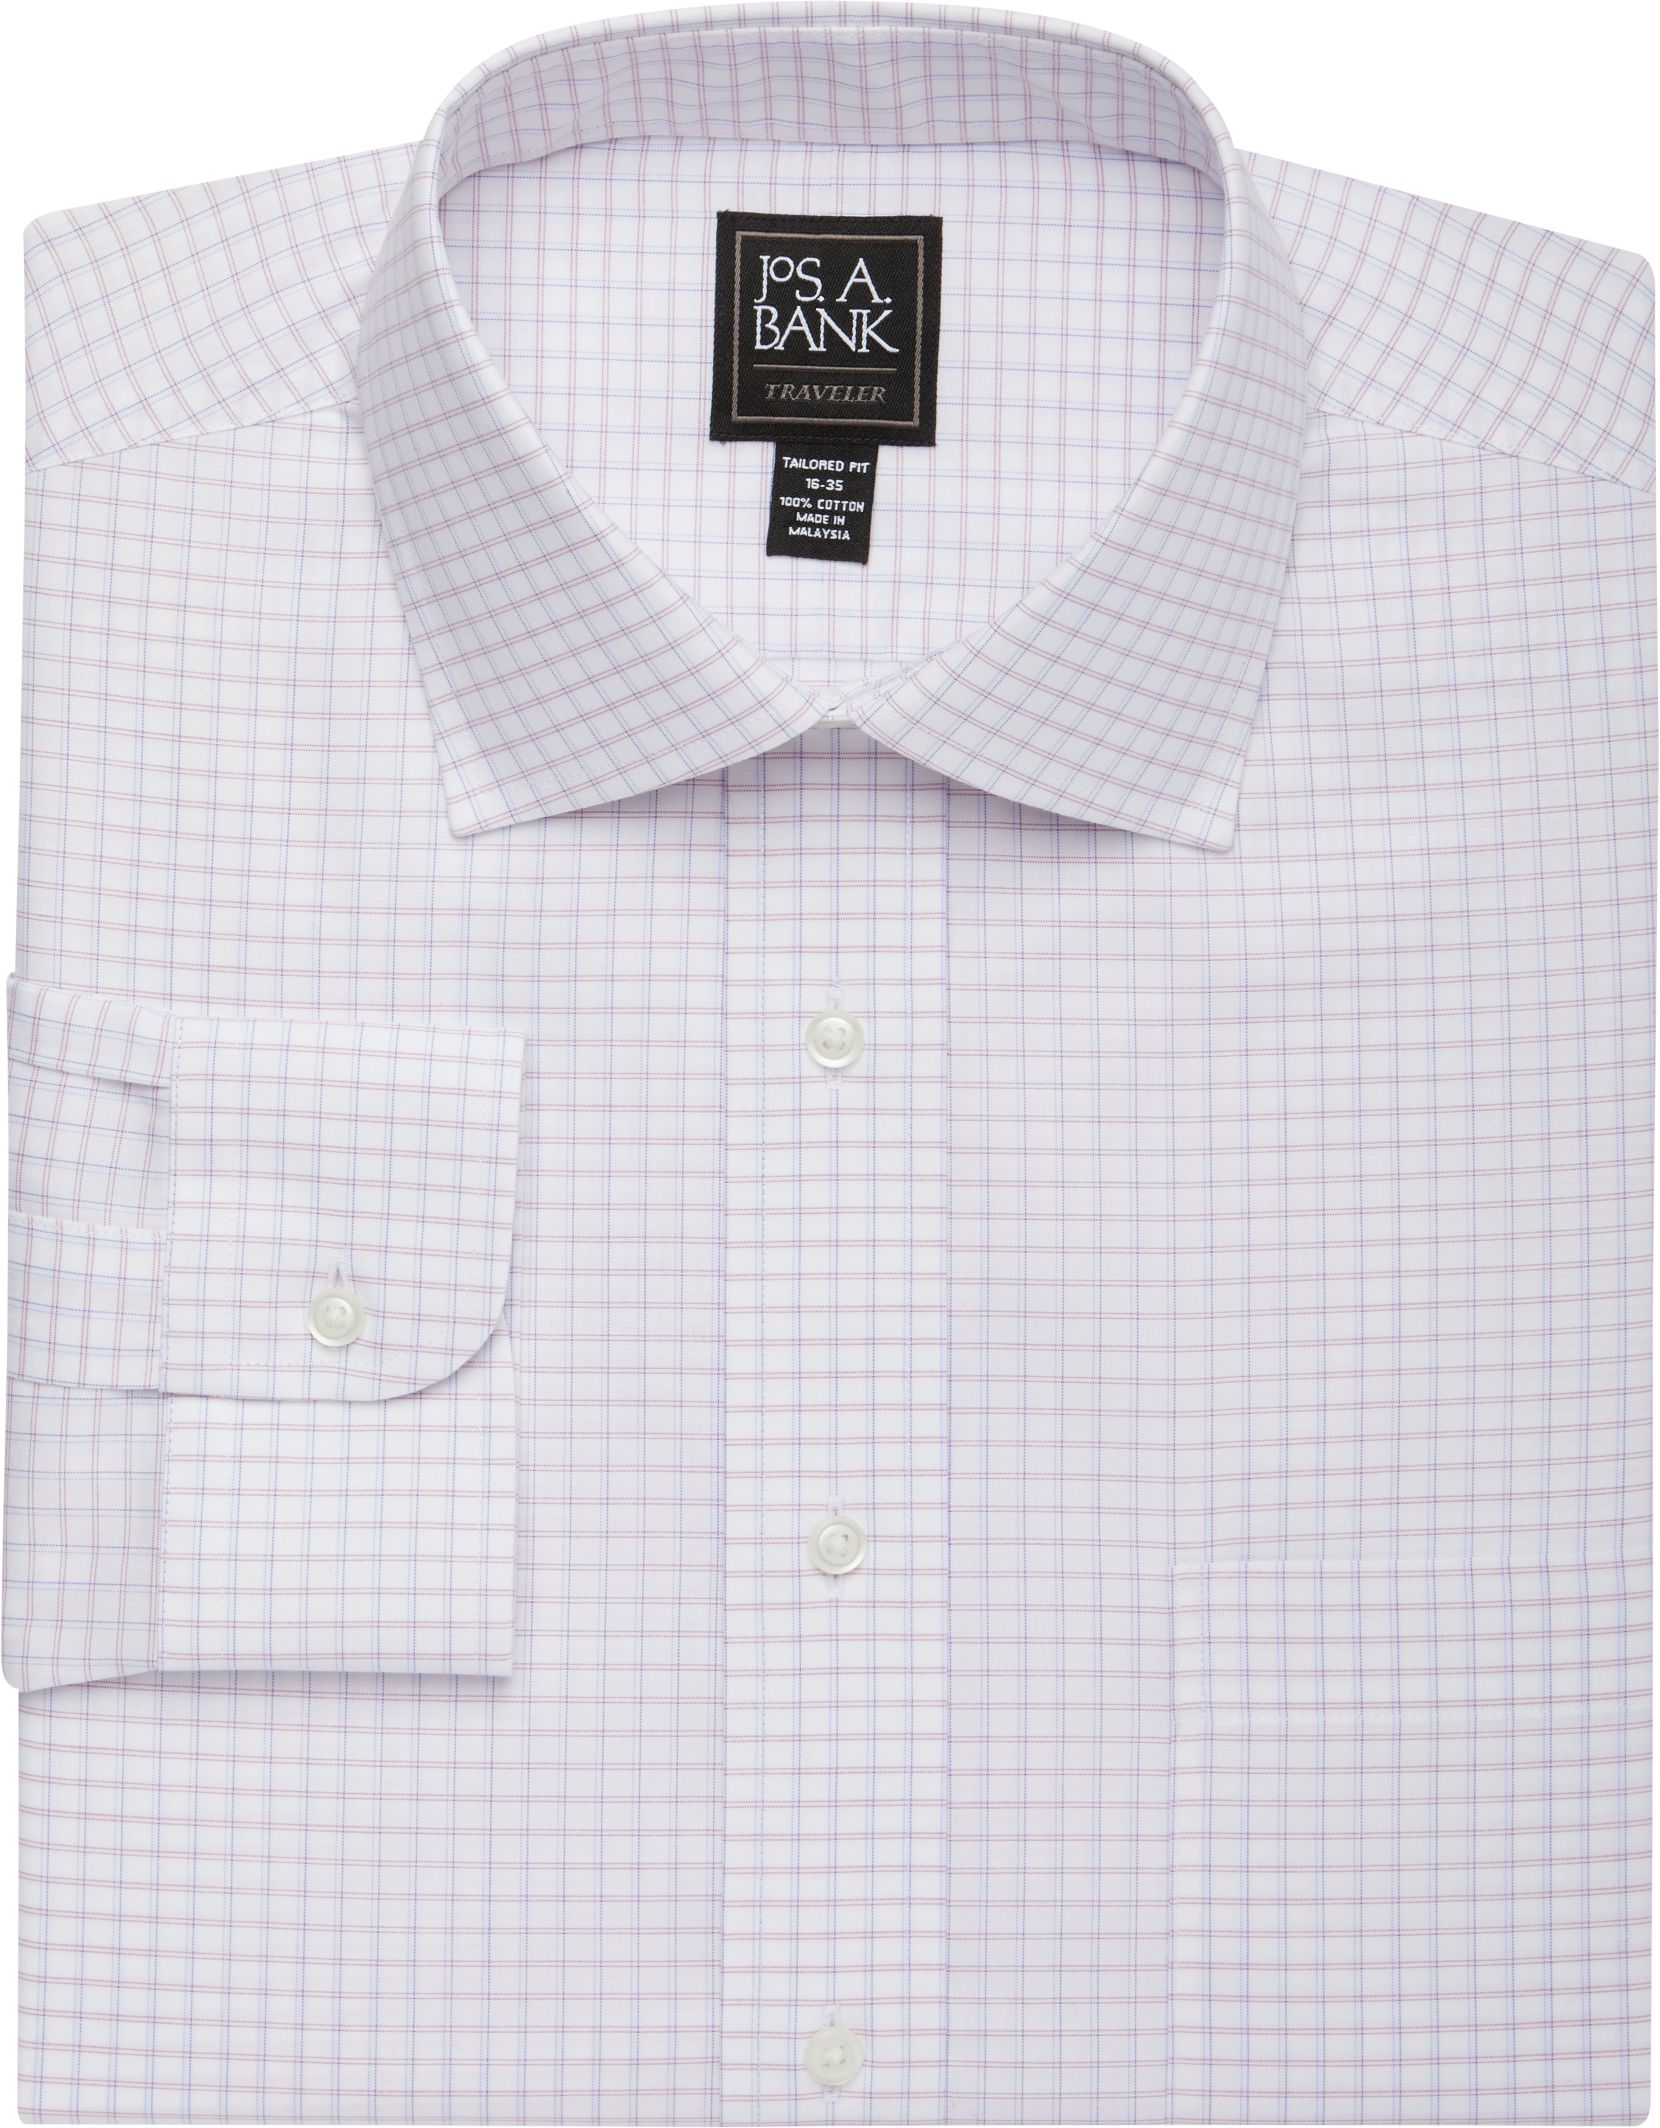 Traveler Collection Tailored Fit Spread Collar Mini Grid Dress Shirt